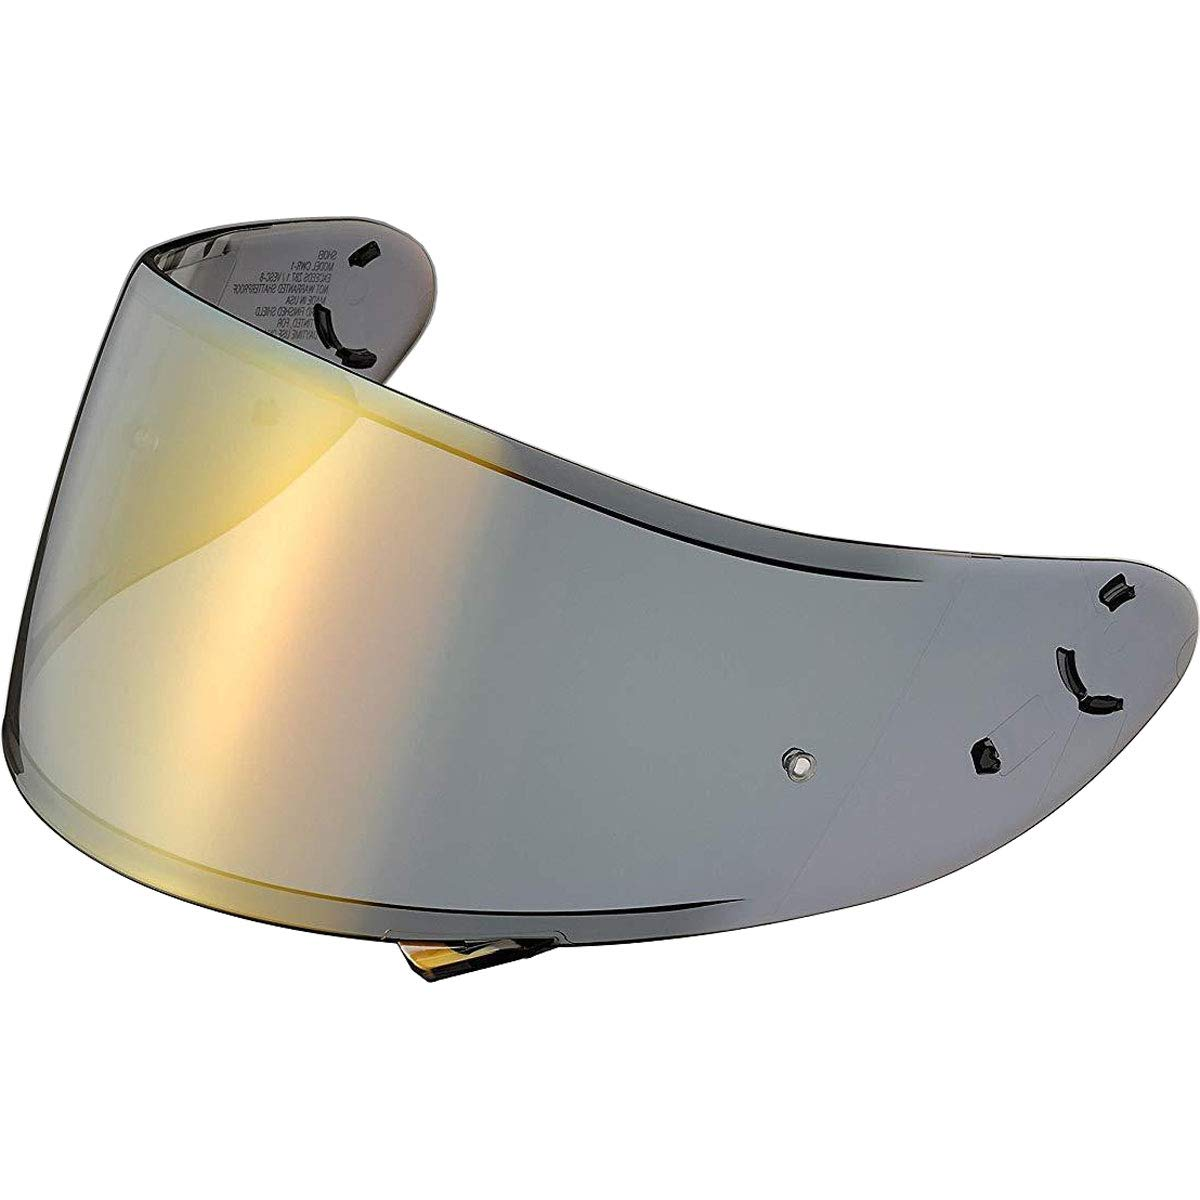 Shoei Spectra Shield with Pinlock Pins CWR-1 Street Motorcycle Helmet Accessories - Gold - for RF-1200 by Shoei